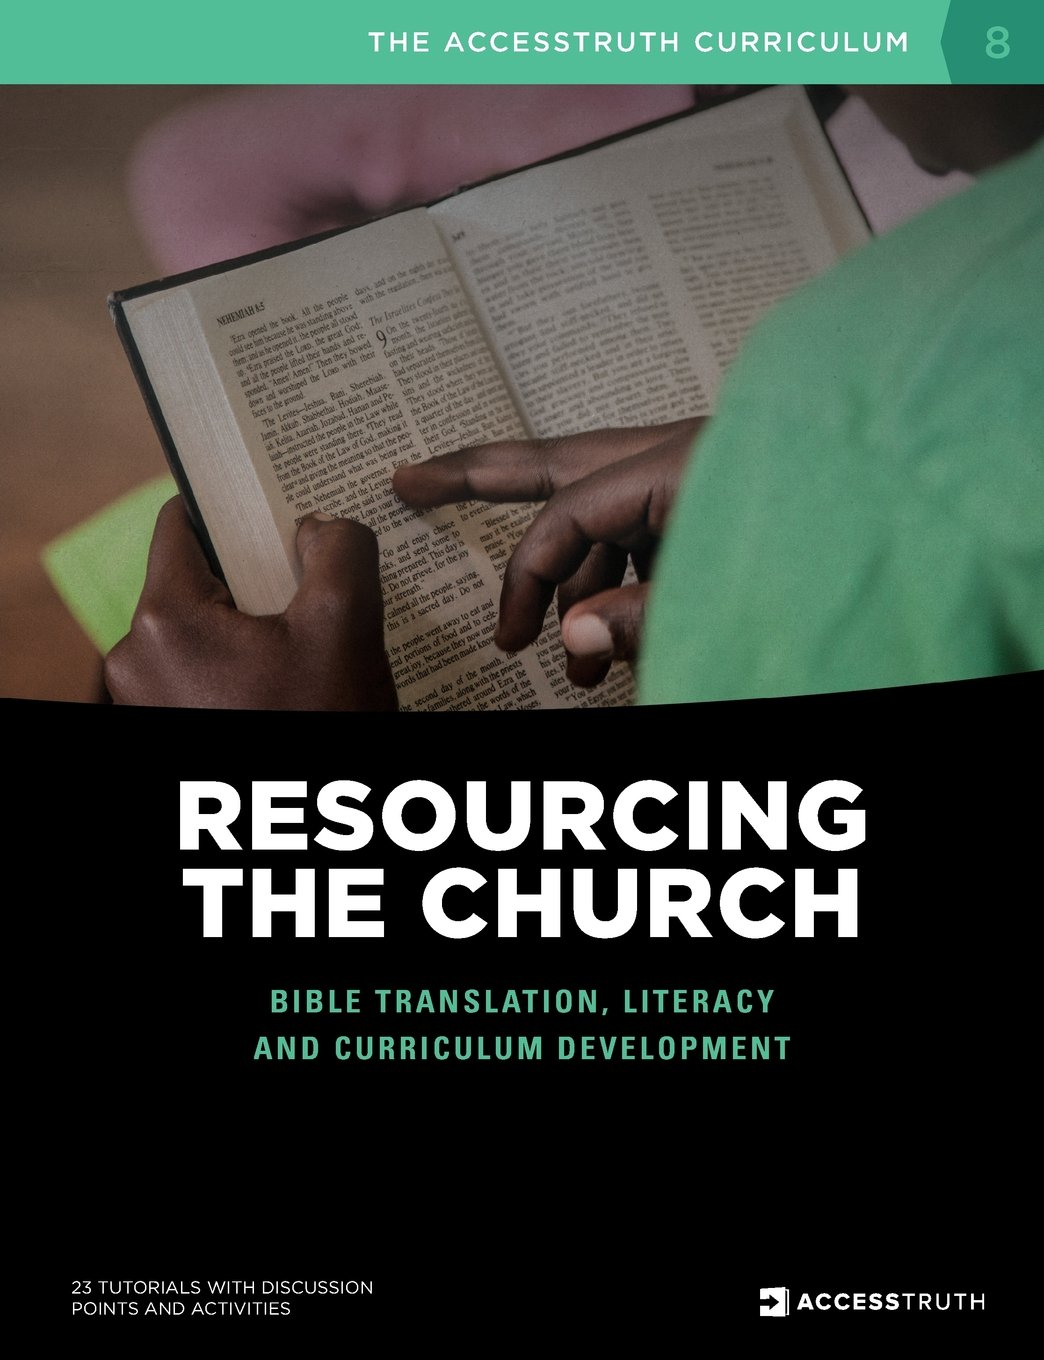 Resourcing the Church: Bible Translation, Literacy and Curriculum Development (Accesstruth Curriculum) pdf